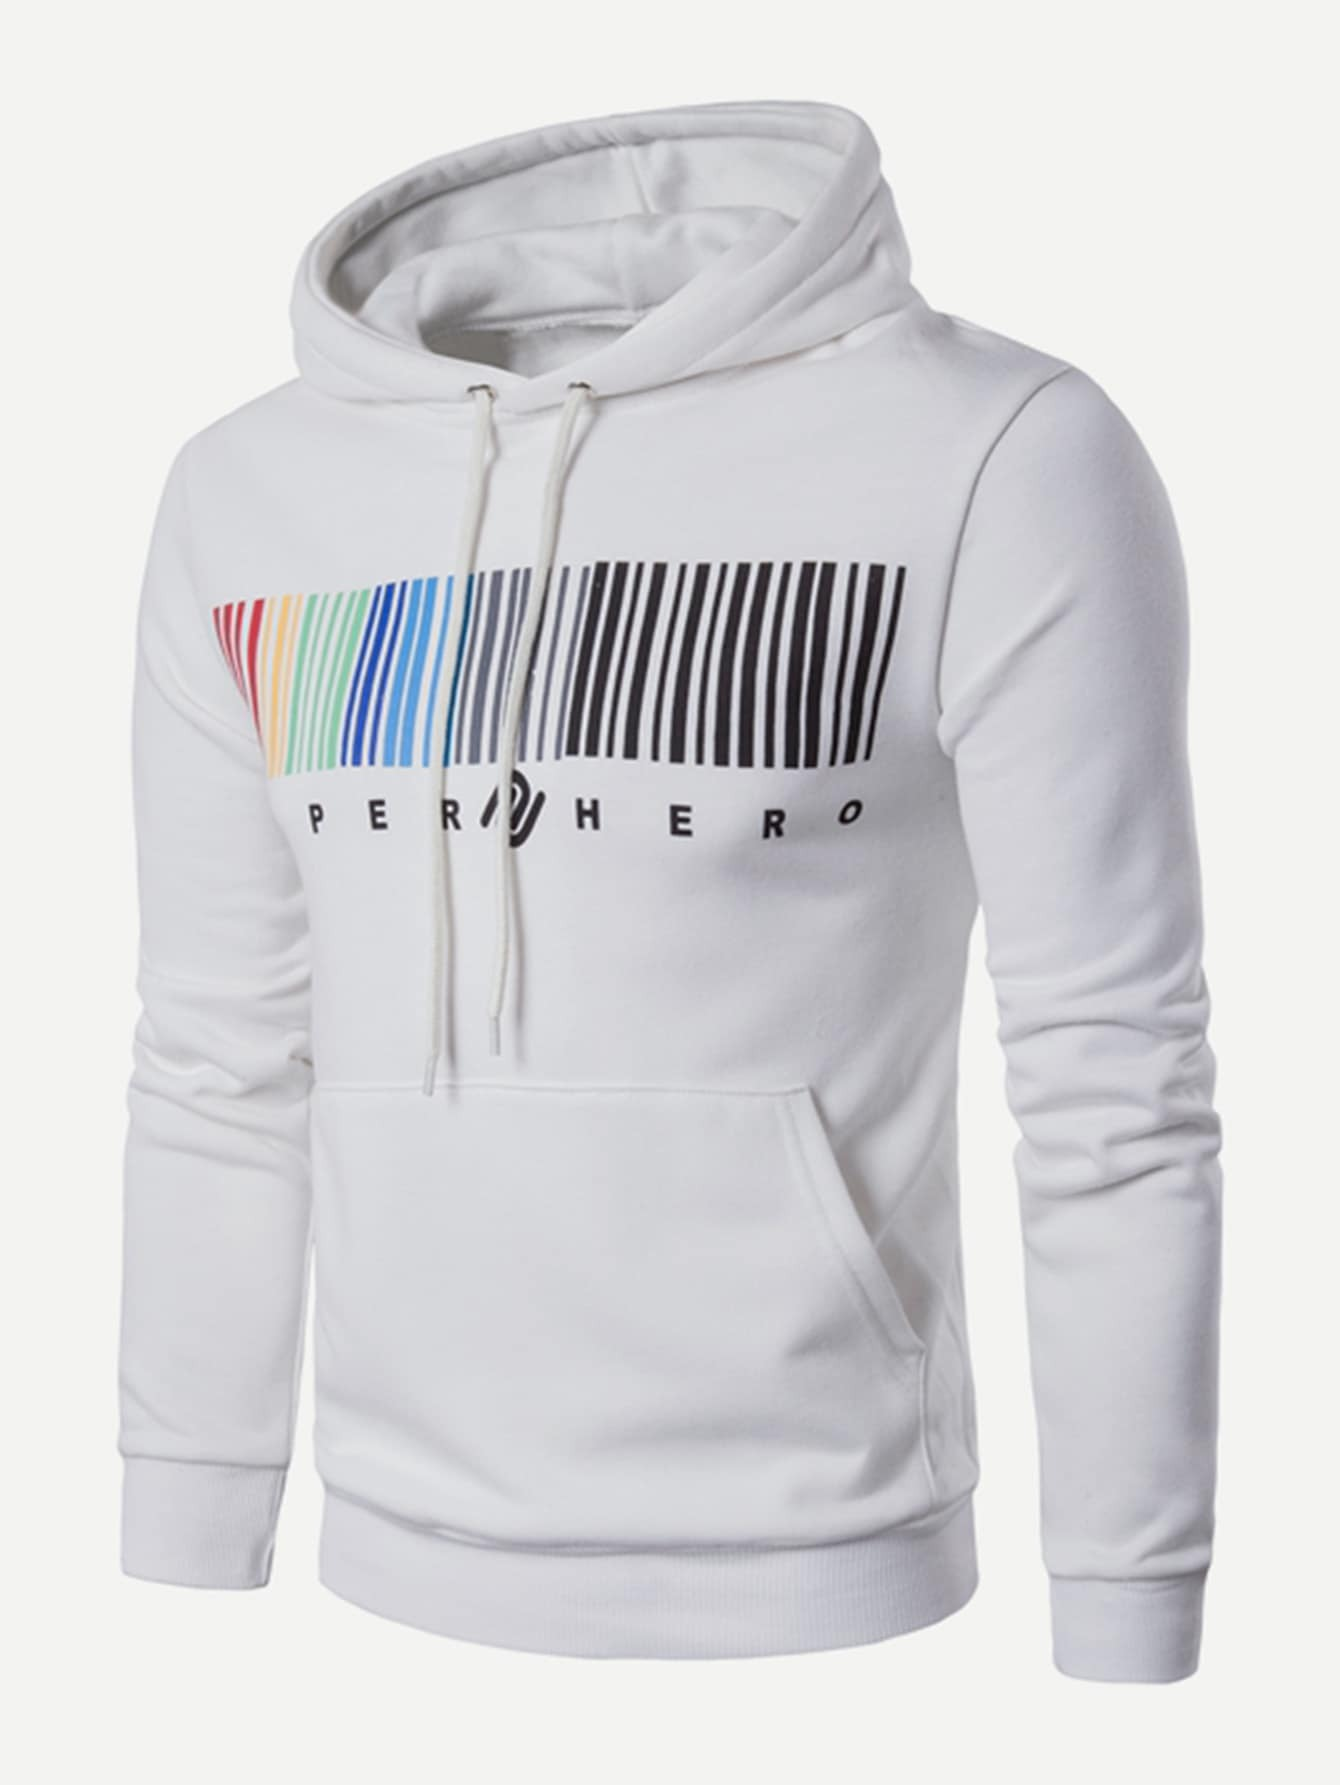 Men Colorful QR Code Print Hooded Sweatshirt qr code bar code printer stickers label printer support jewelry and clothing tags argox ox 100